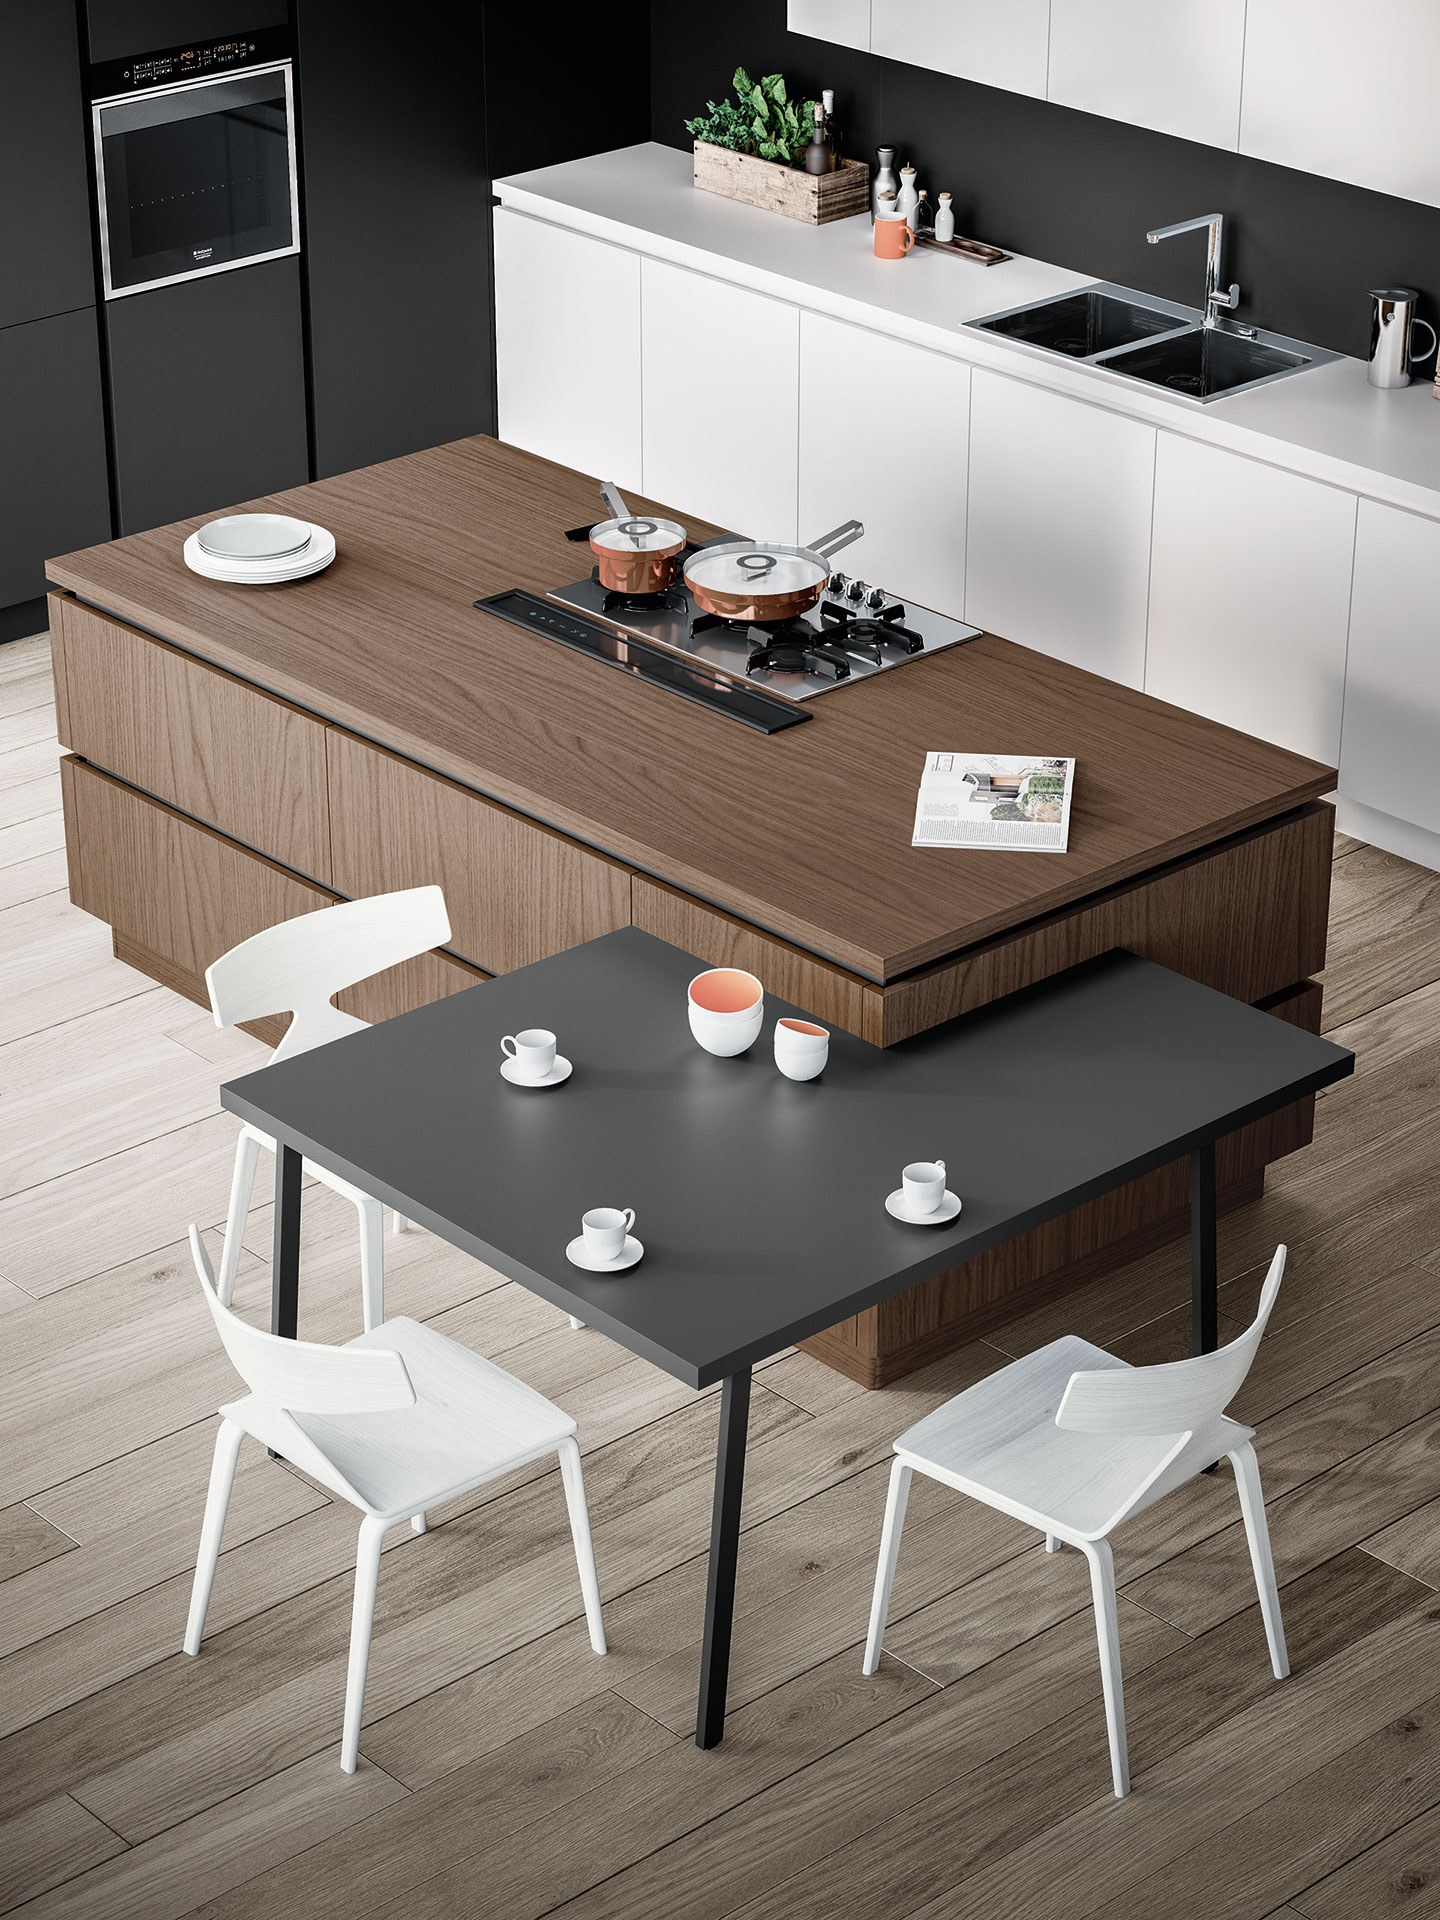 Un design originale per le cucine moderne antares for Design di showroom di mobili